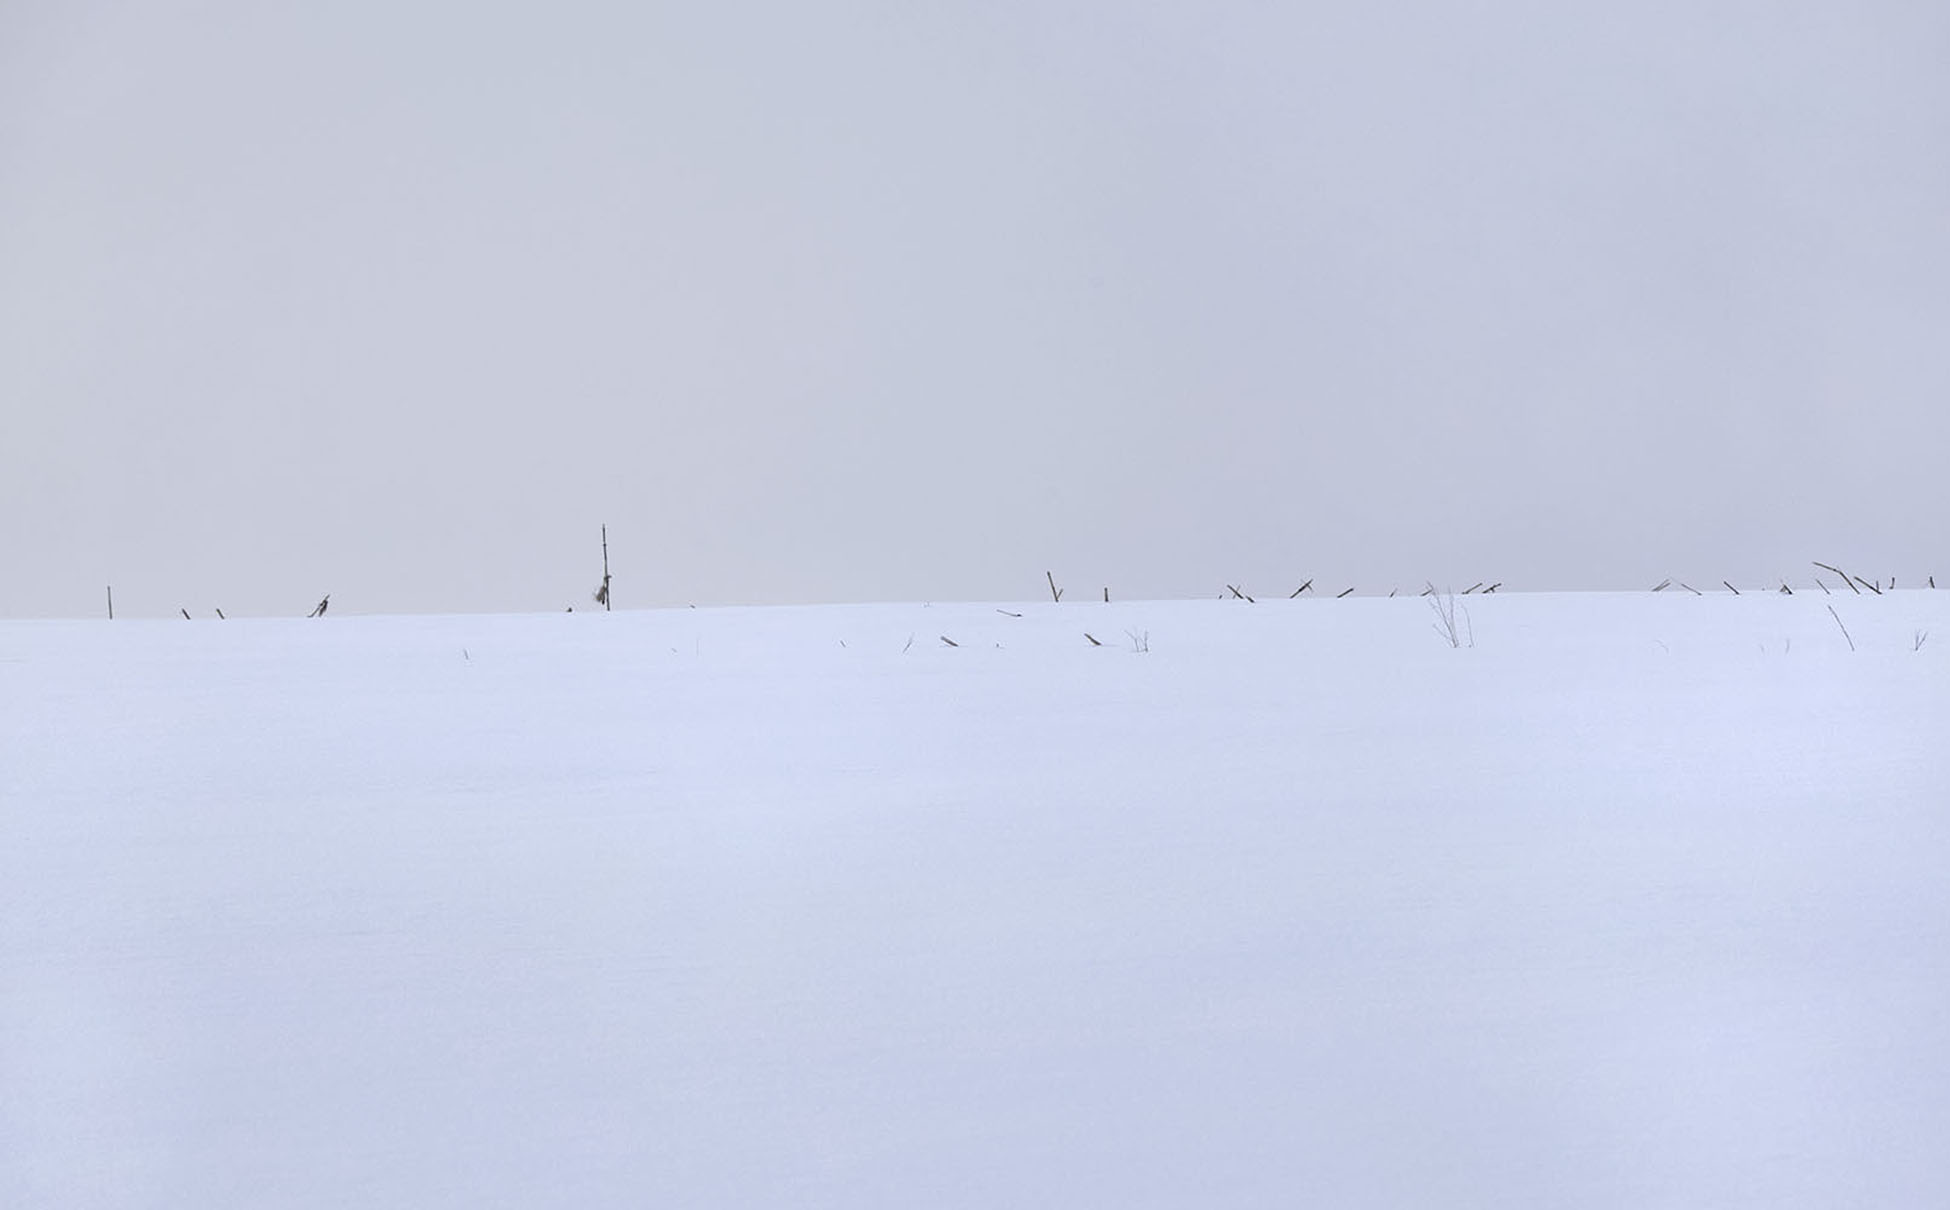 Light Frost #0456, 2014, archival pigment print on photo rag paper, 30 x 20 in, $1,800; 40 x 27 in, $2,600